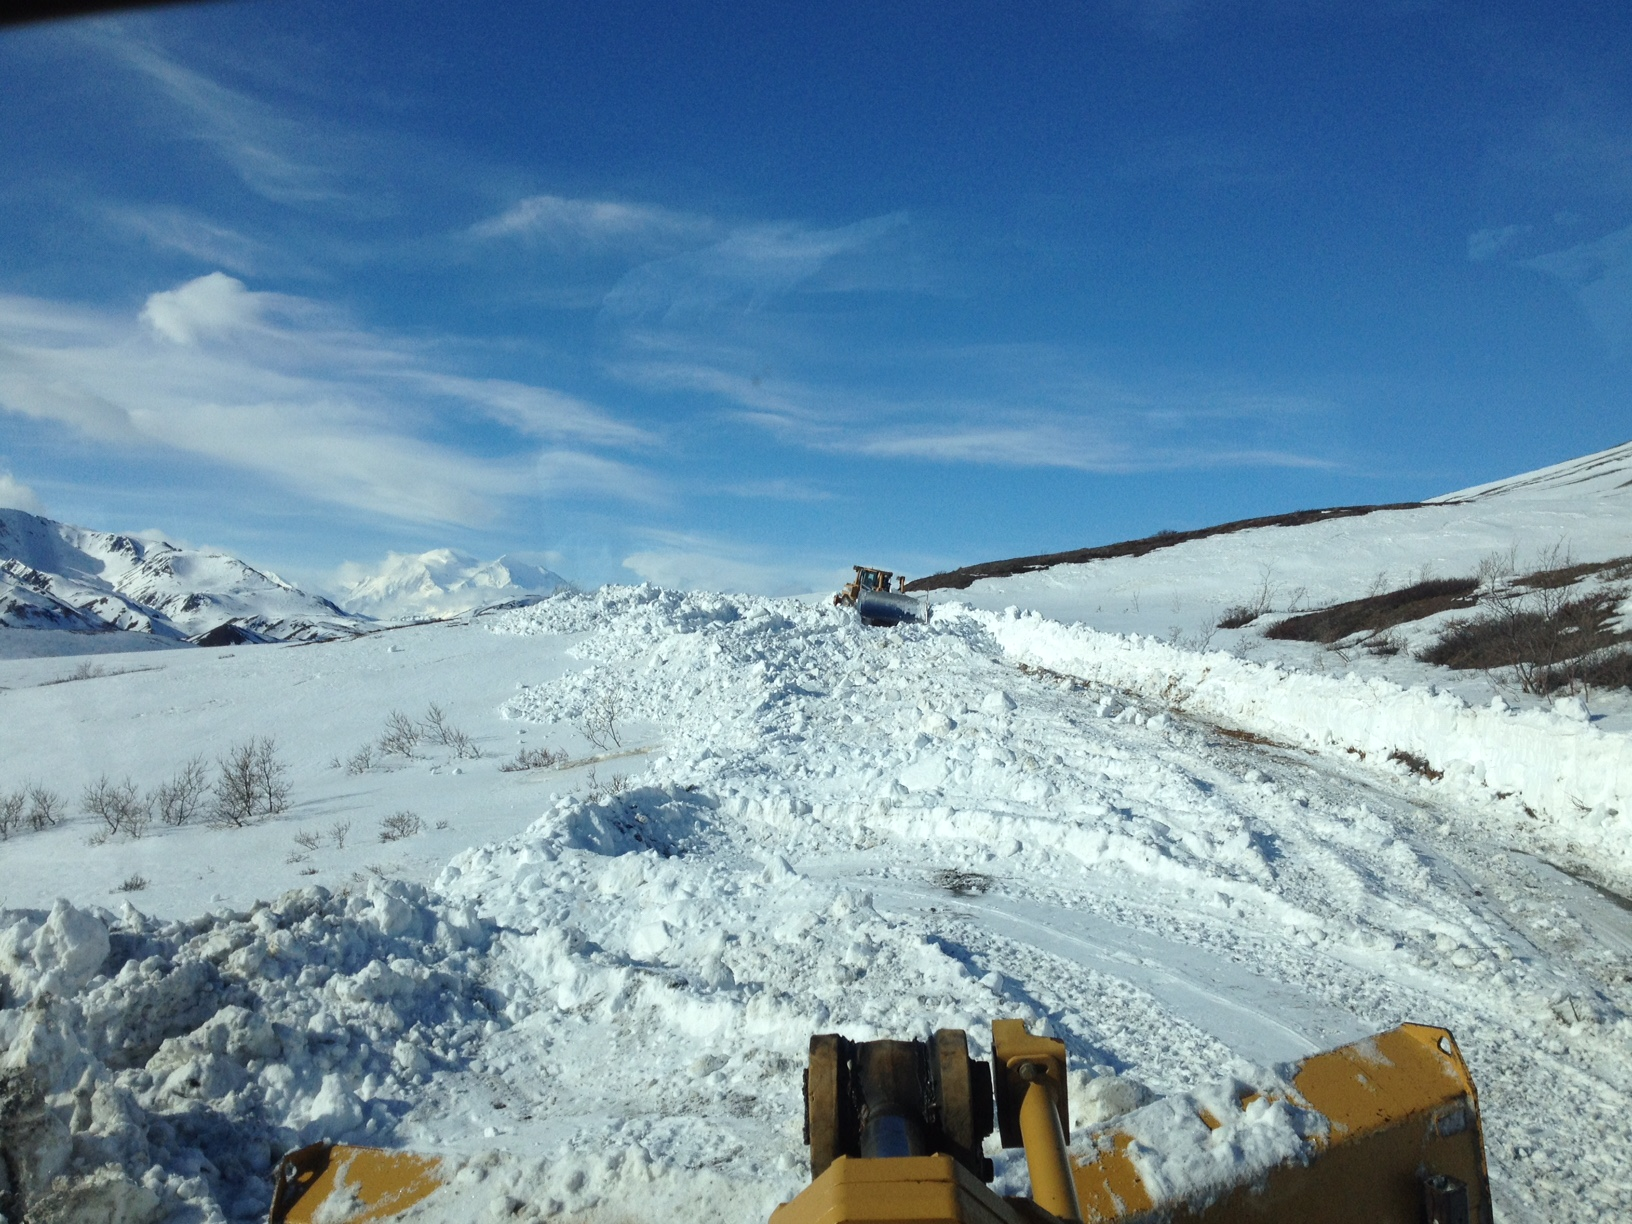 two large machines plow a snowy road on a hillside under a beautiful blue sky